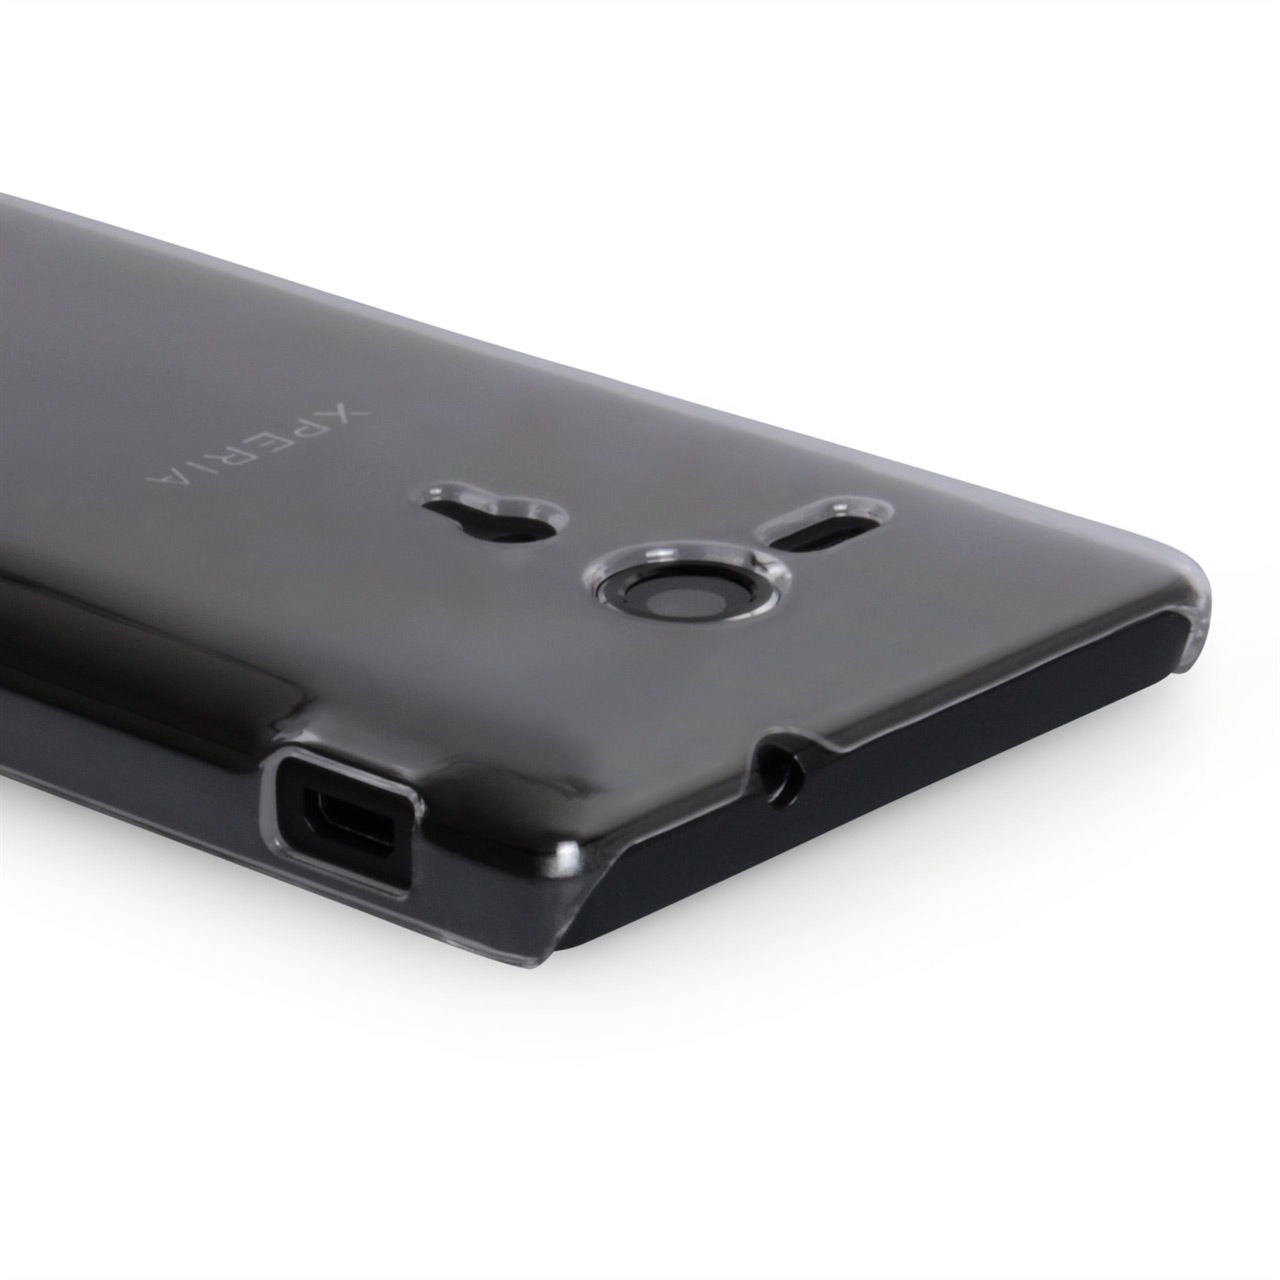 YouSave Accessories Sony Xperia SP Hard Case - Clear